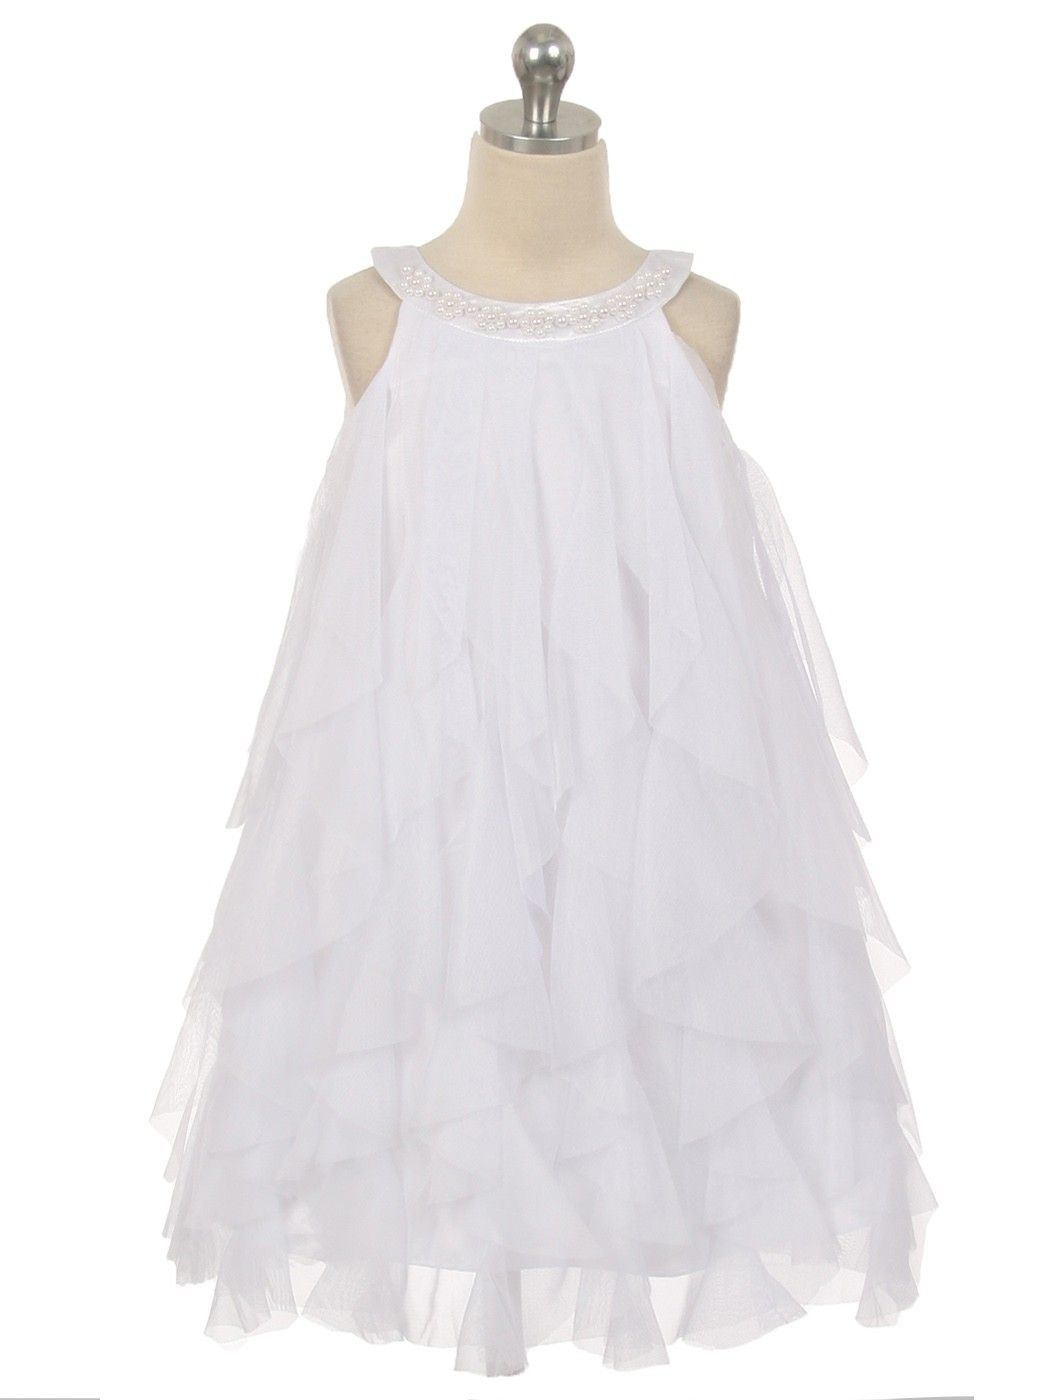 White mesh multi layered flower girl dress available in sizes